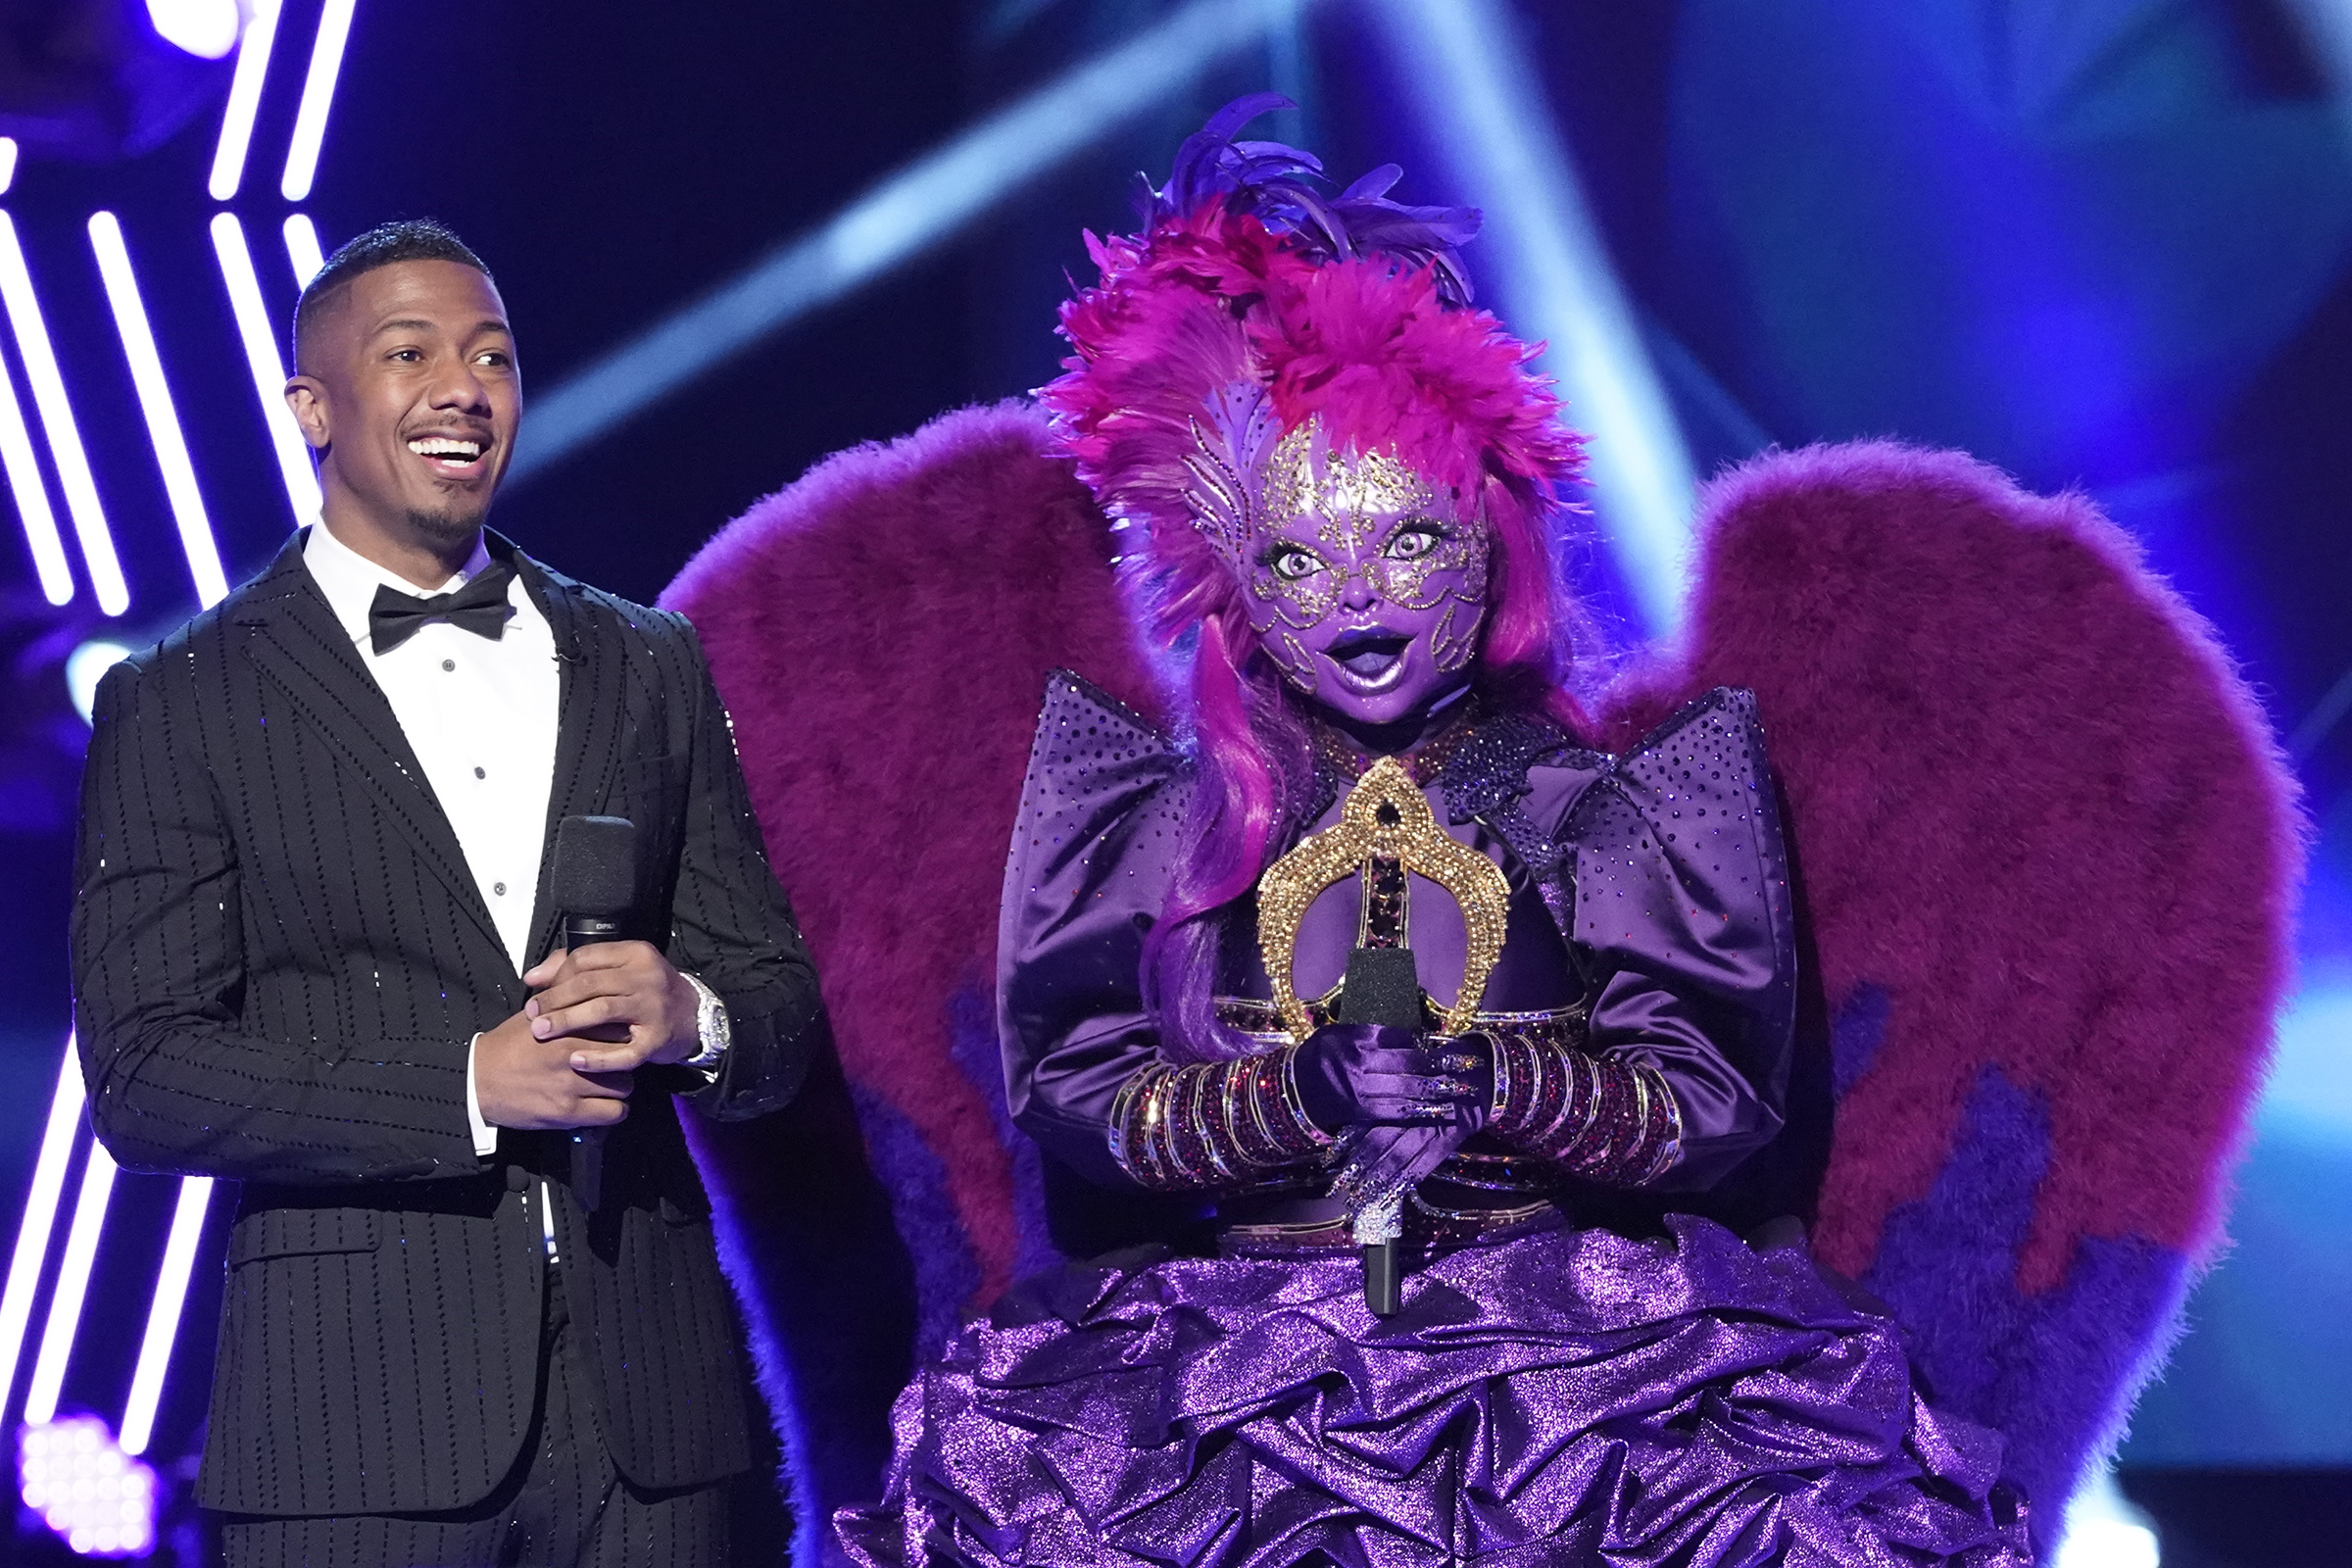 The Masked Singer Here s Who Was Or Wasn t Unmasked This Week Variety